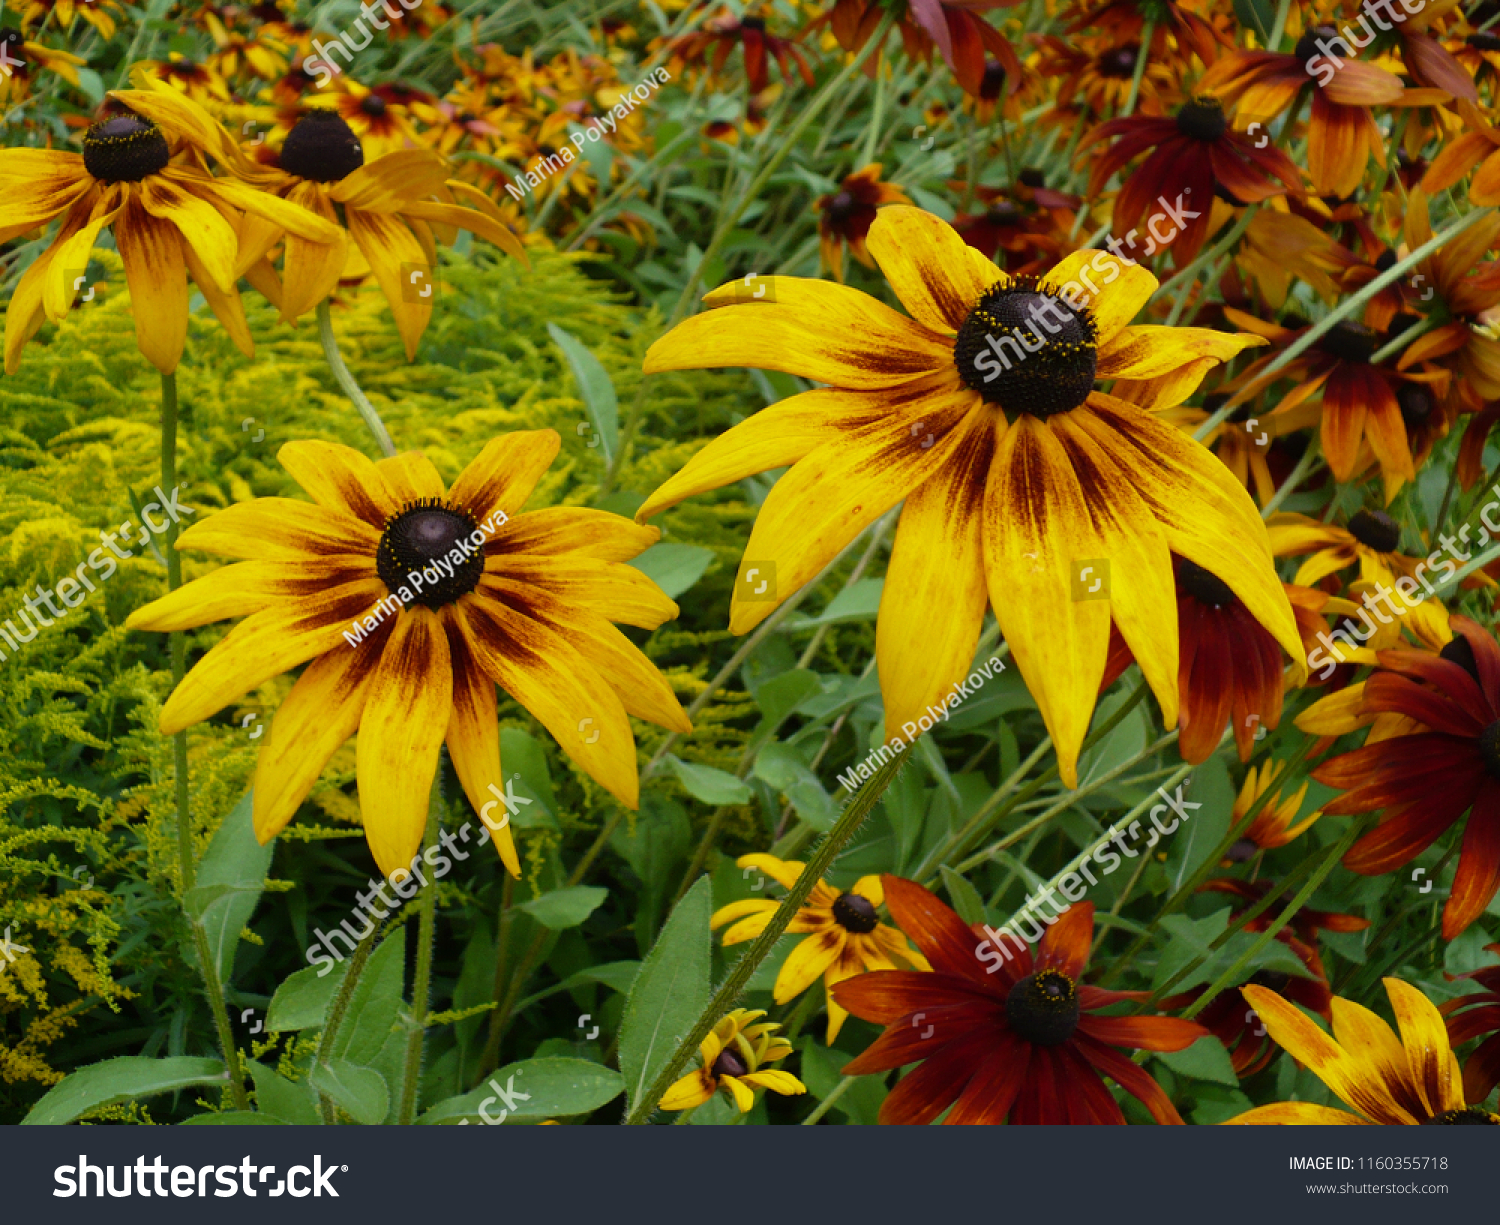 Black-eyed Susan in the garden #1160355718